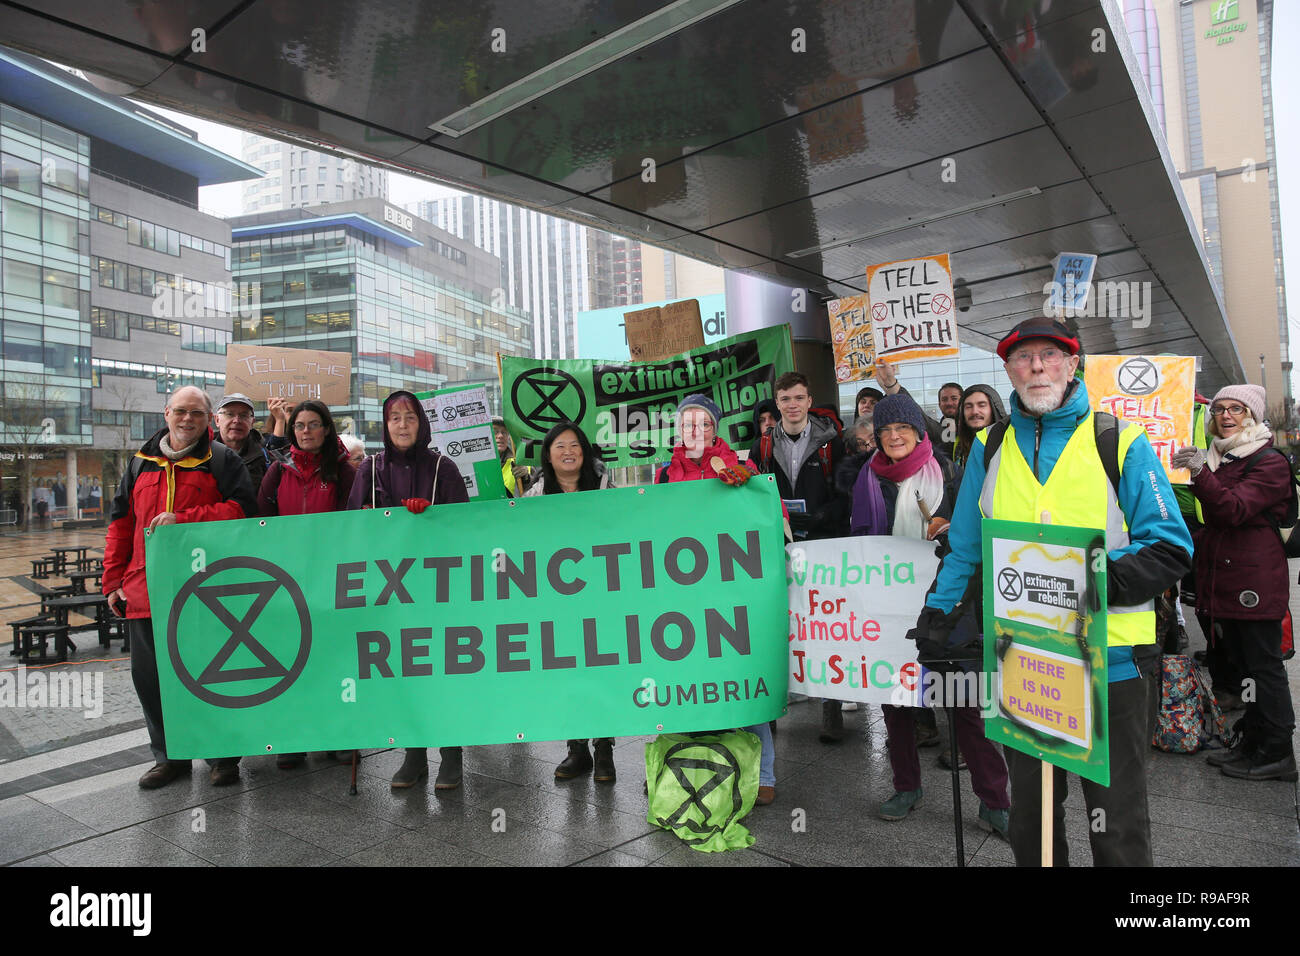 Salford, UK. 21st Dec, 2018. Extinction Rebellion campaigners gather to hold a protest outside the BBC to convey their concerns of the climate and ecological emergency and demand urgent action. The campaigners said they are 'calling on the BBC, as a respected media voice in the UK, to play a key role in the change needed'. BBC, Media City, Salford, UK, 21st December 2018 (C)Barbara Cook/Alamy Live News Credit: Barbara Cook/Alamy Live News - Stock Image